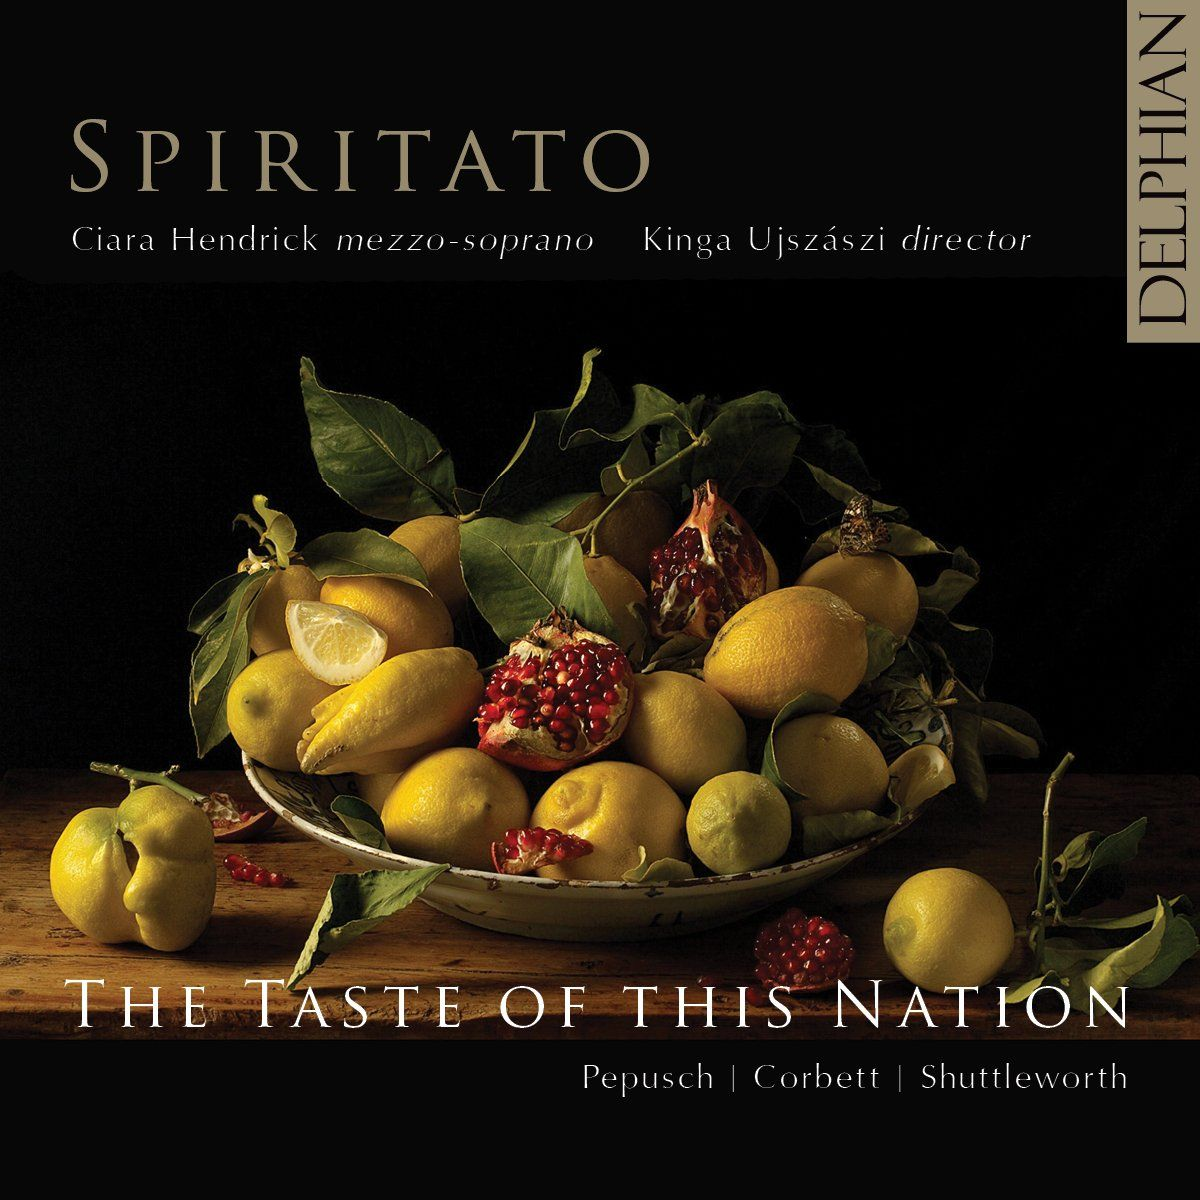 The Taste of this Nation - Pepusch | Corbett | Shuttleworth